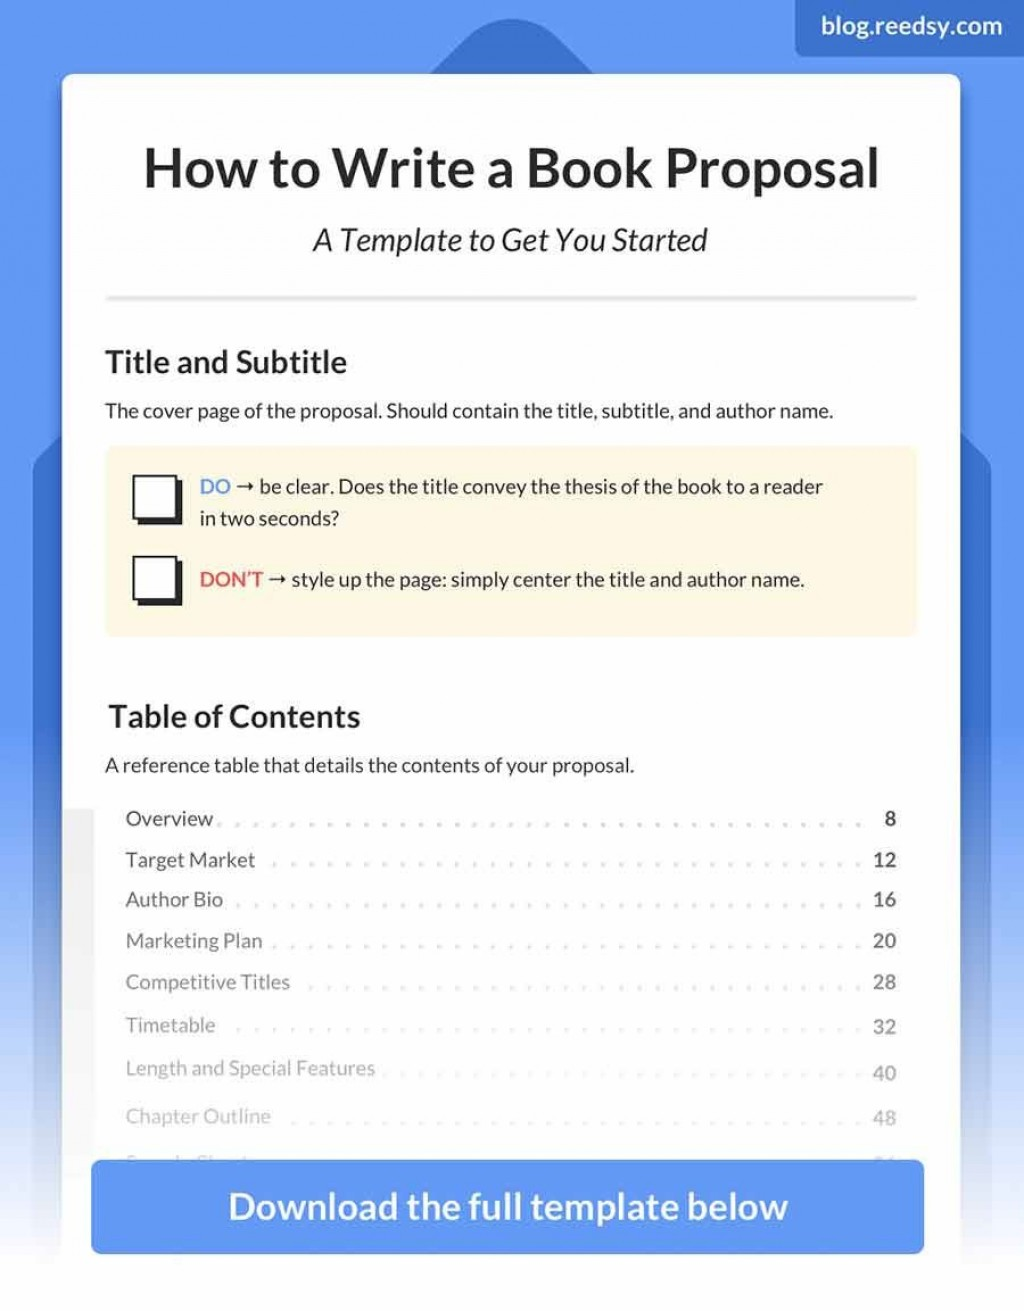 007 Unique About The Author Template Picture  Pdf All For StudentLarge